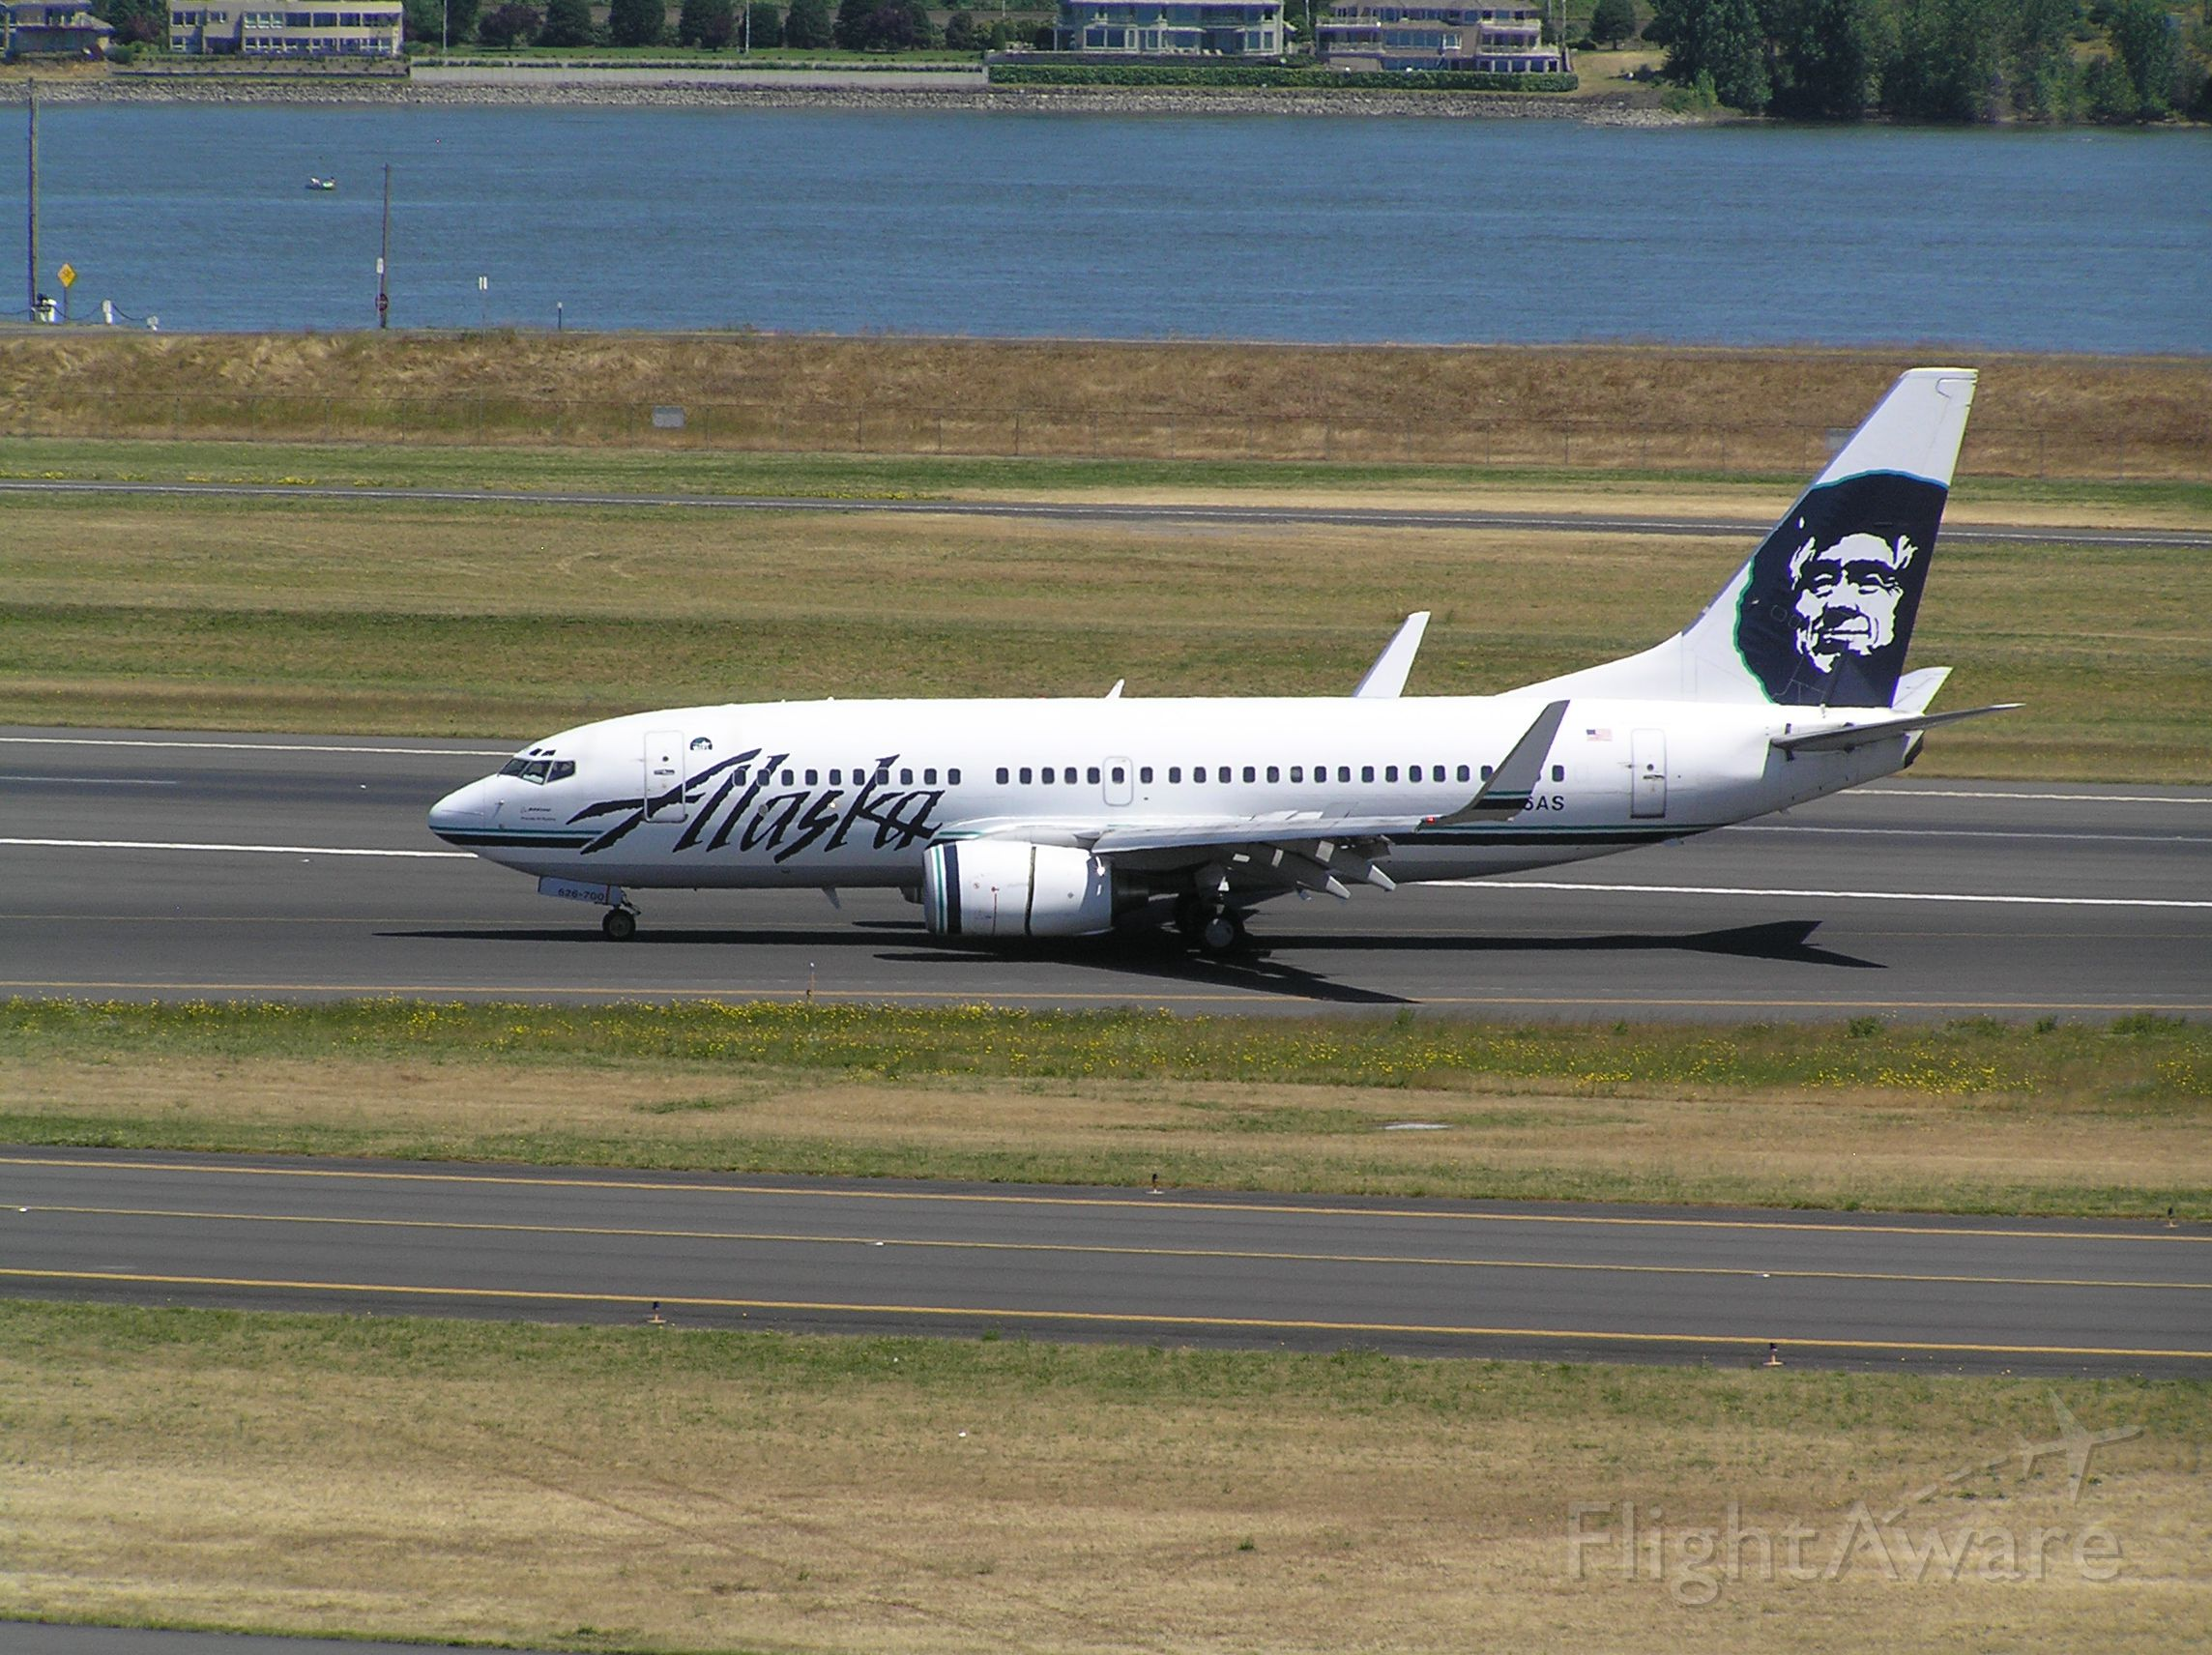 Boeing 737-700 (N626AS) - July 6, 2011, near midday. Departing 28R, inbound for gate.